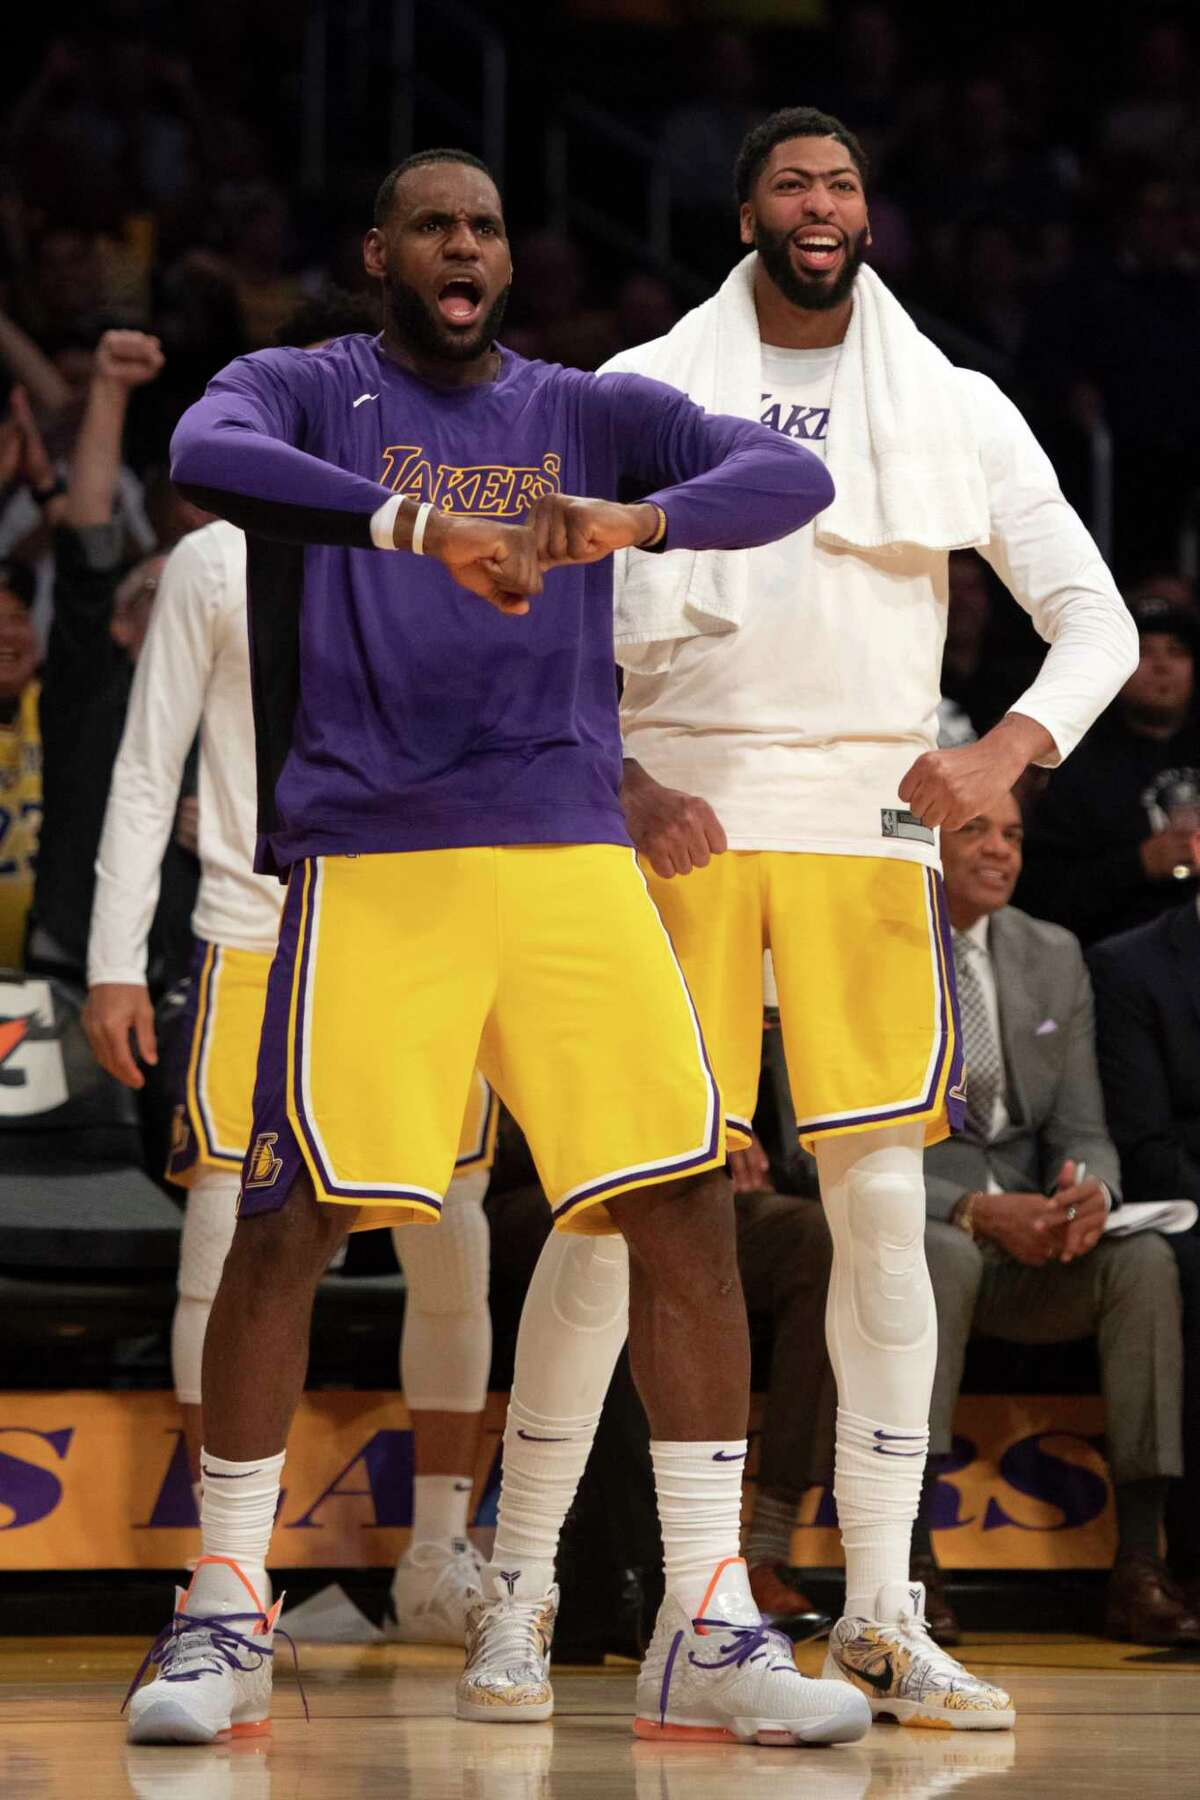 Los Angeles Lakers forward LeBron James, left, and forward Anthony Davis react after center JaVale McGee dunked during the second half of the team's NBA basketball game against the Memphis Grizzlies in Los Angeles, Tuesday, Oct. 29, 2019. (AP Photo/Kyusung Gong)